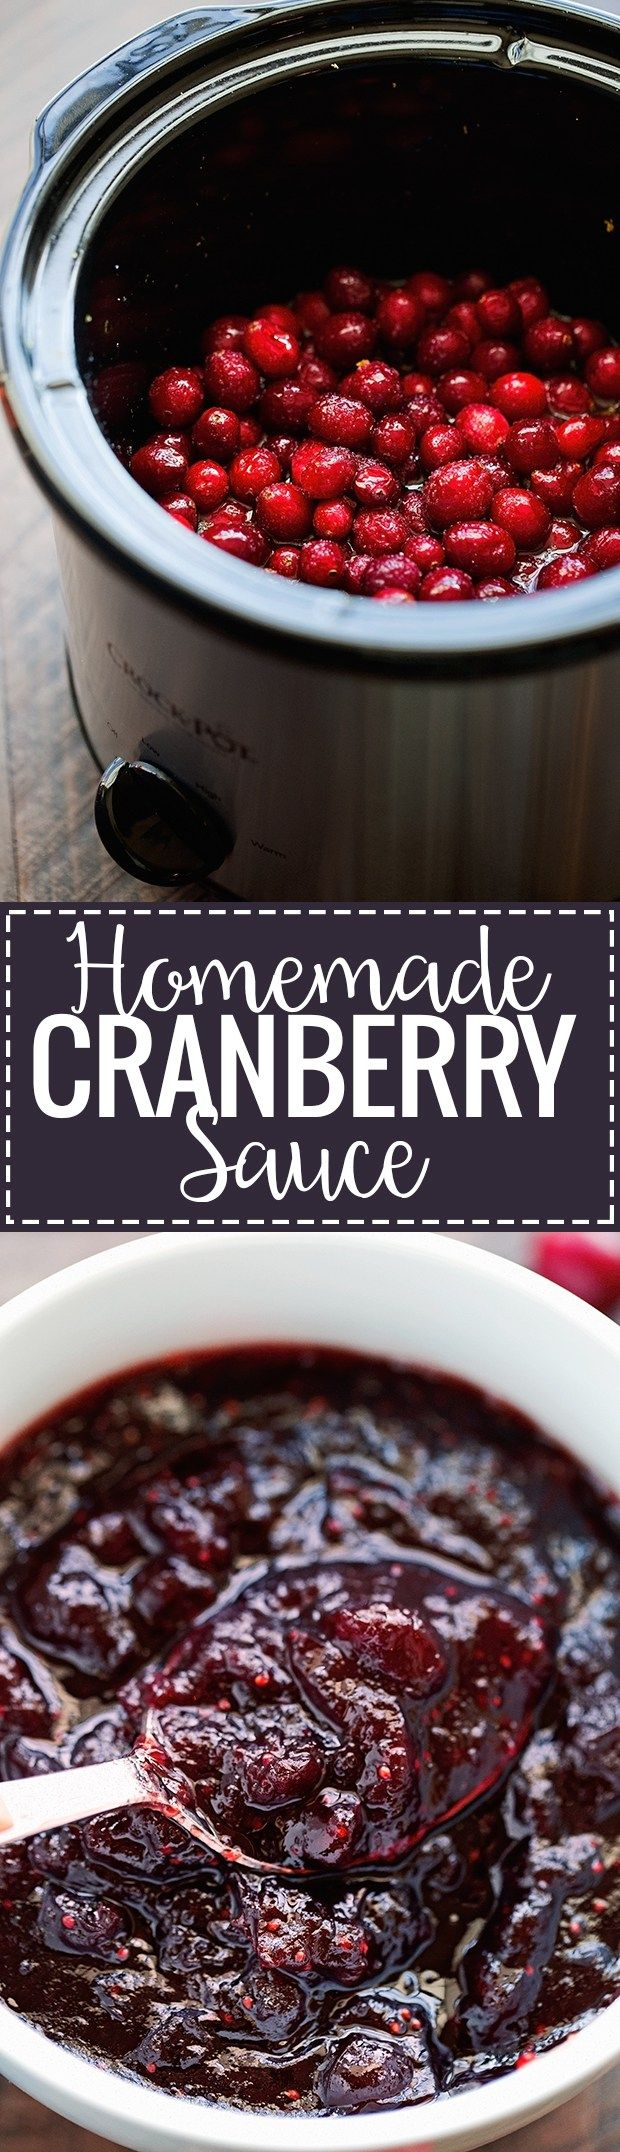 Homemade Cranberry Sauce (Slow Cooker) - an easy recipe that cooks itself in the slow cooker and can be made ahead! #cranberrysauce #slowcooker #slowcookercranberrysauce   Littlespicejar.com